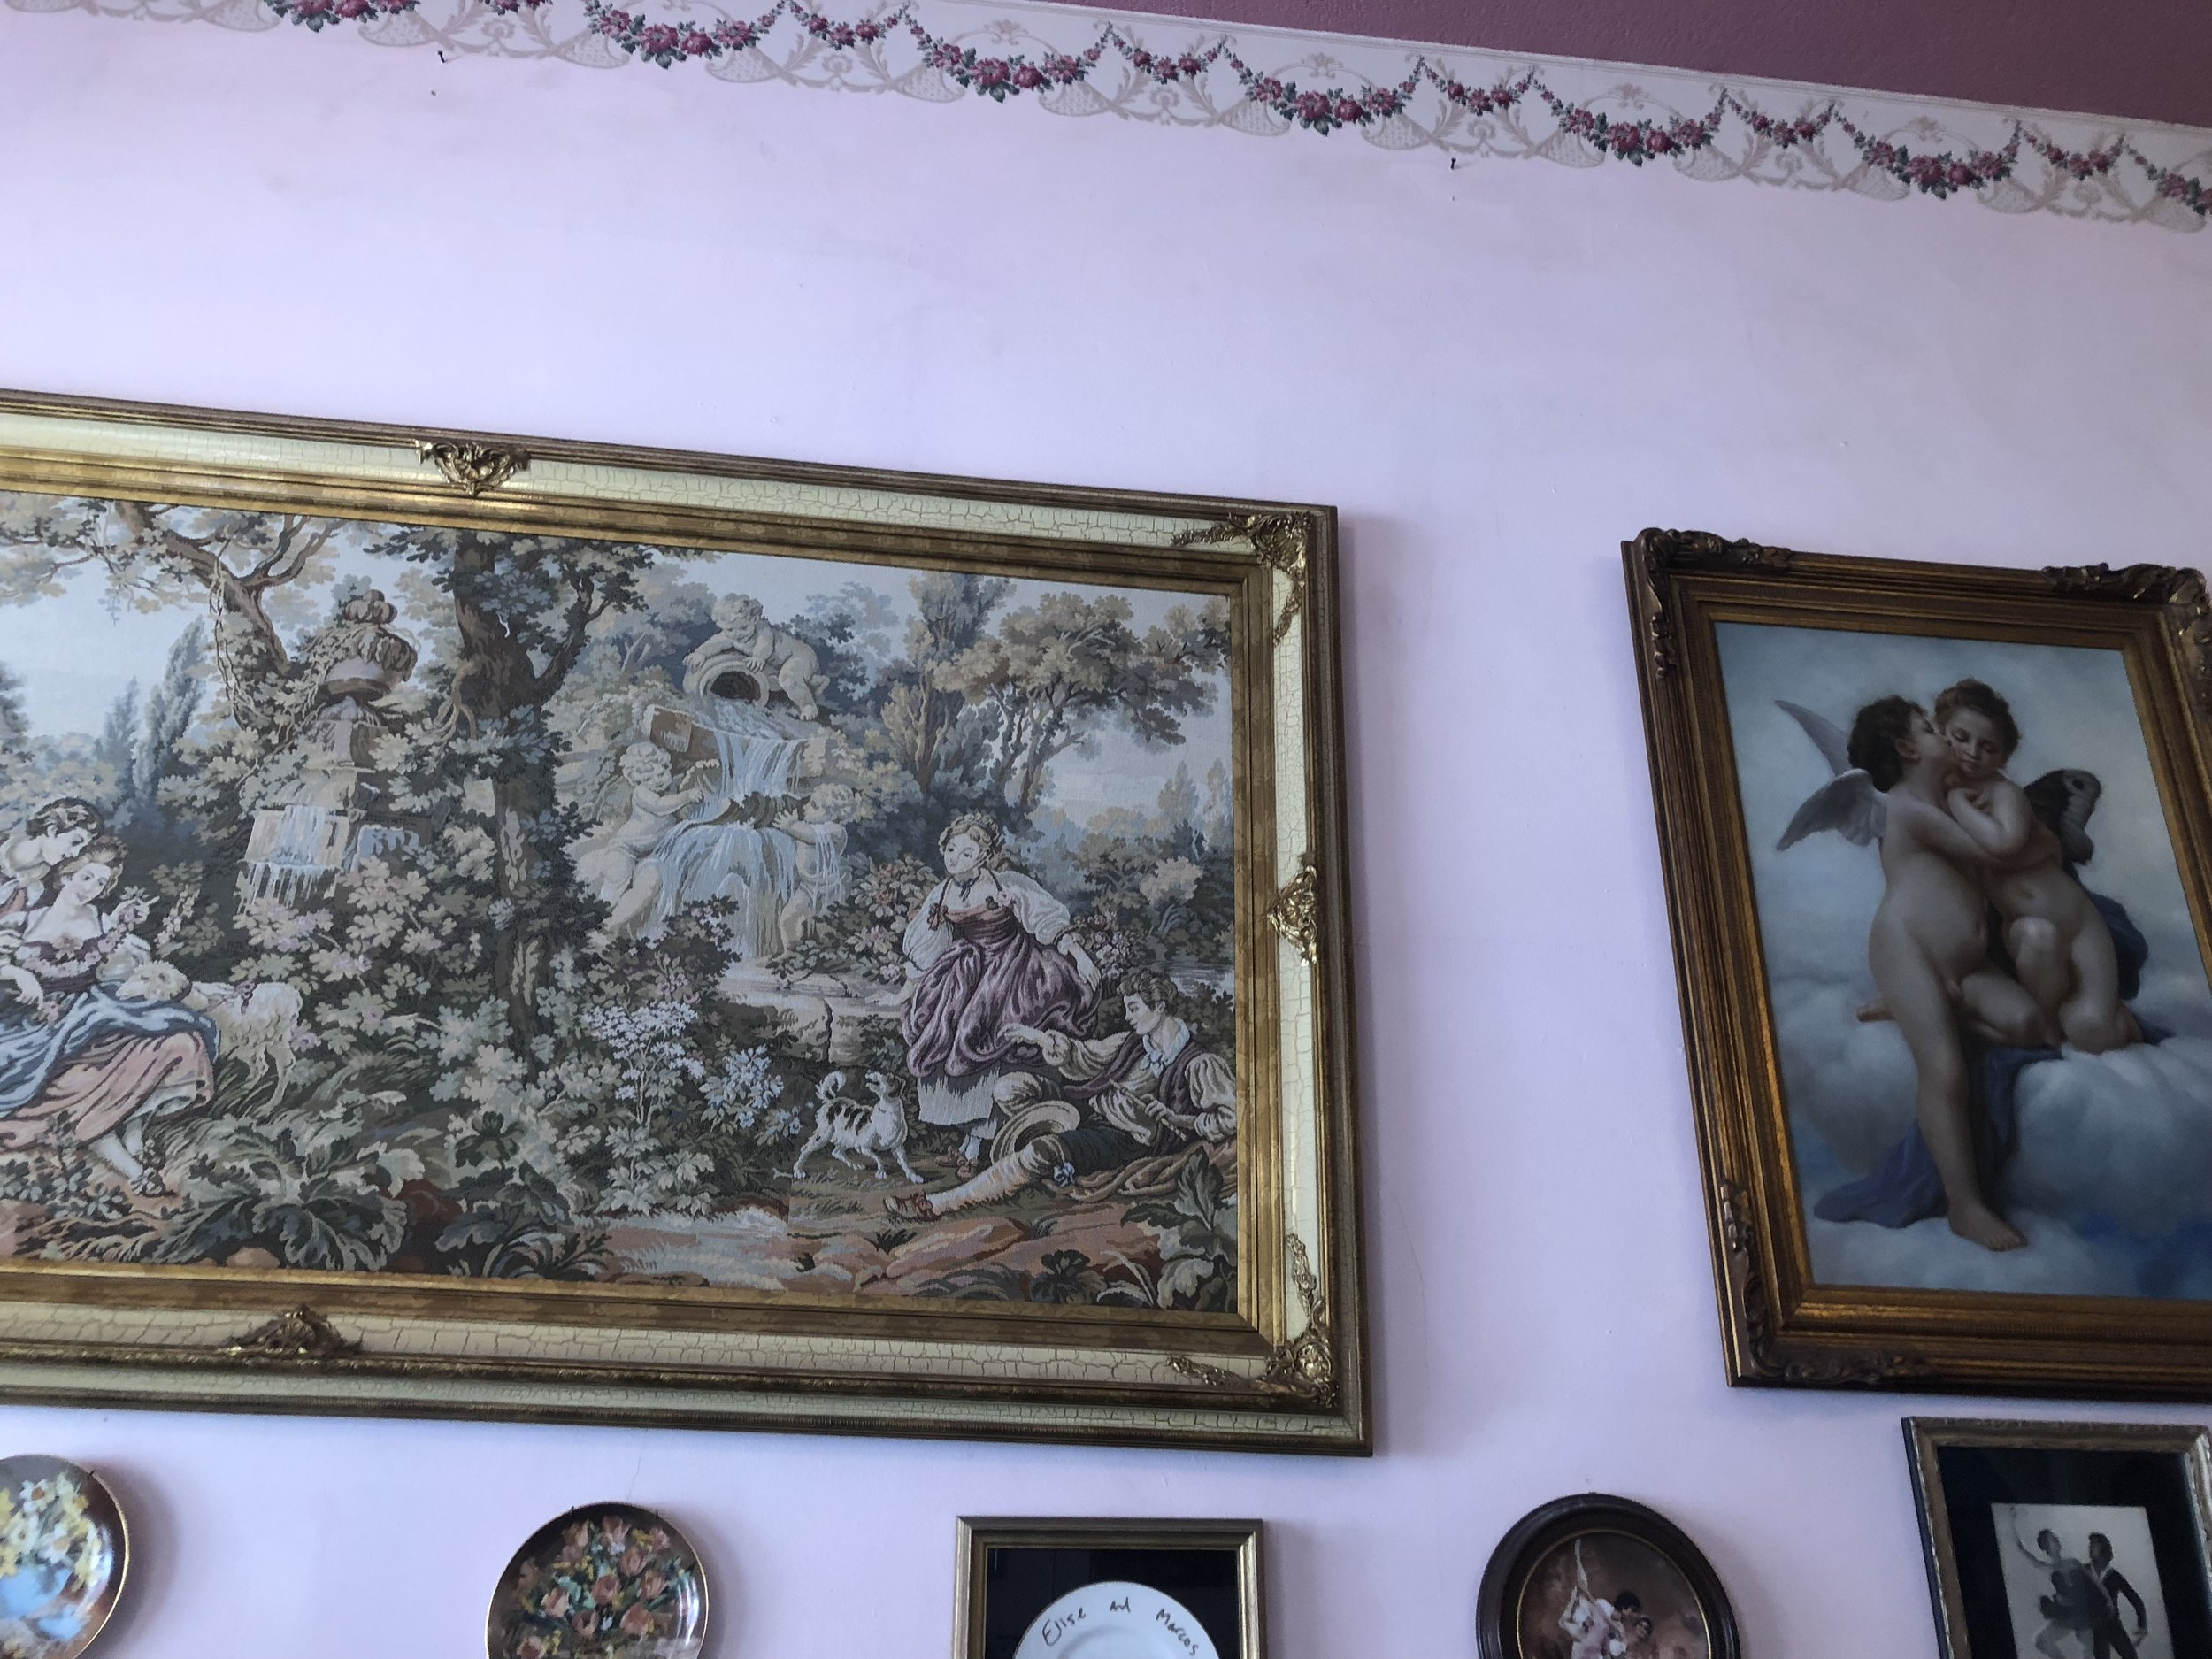 The walls of Elise's Tea Room are decorated in paintings that guests can gaze at while sipping tea.